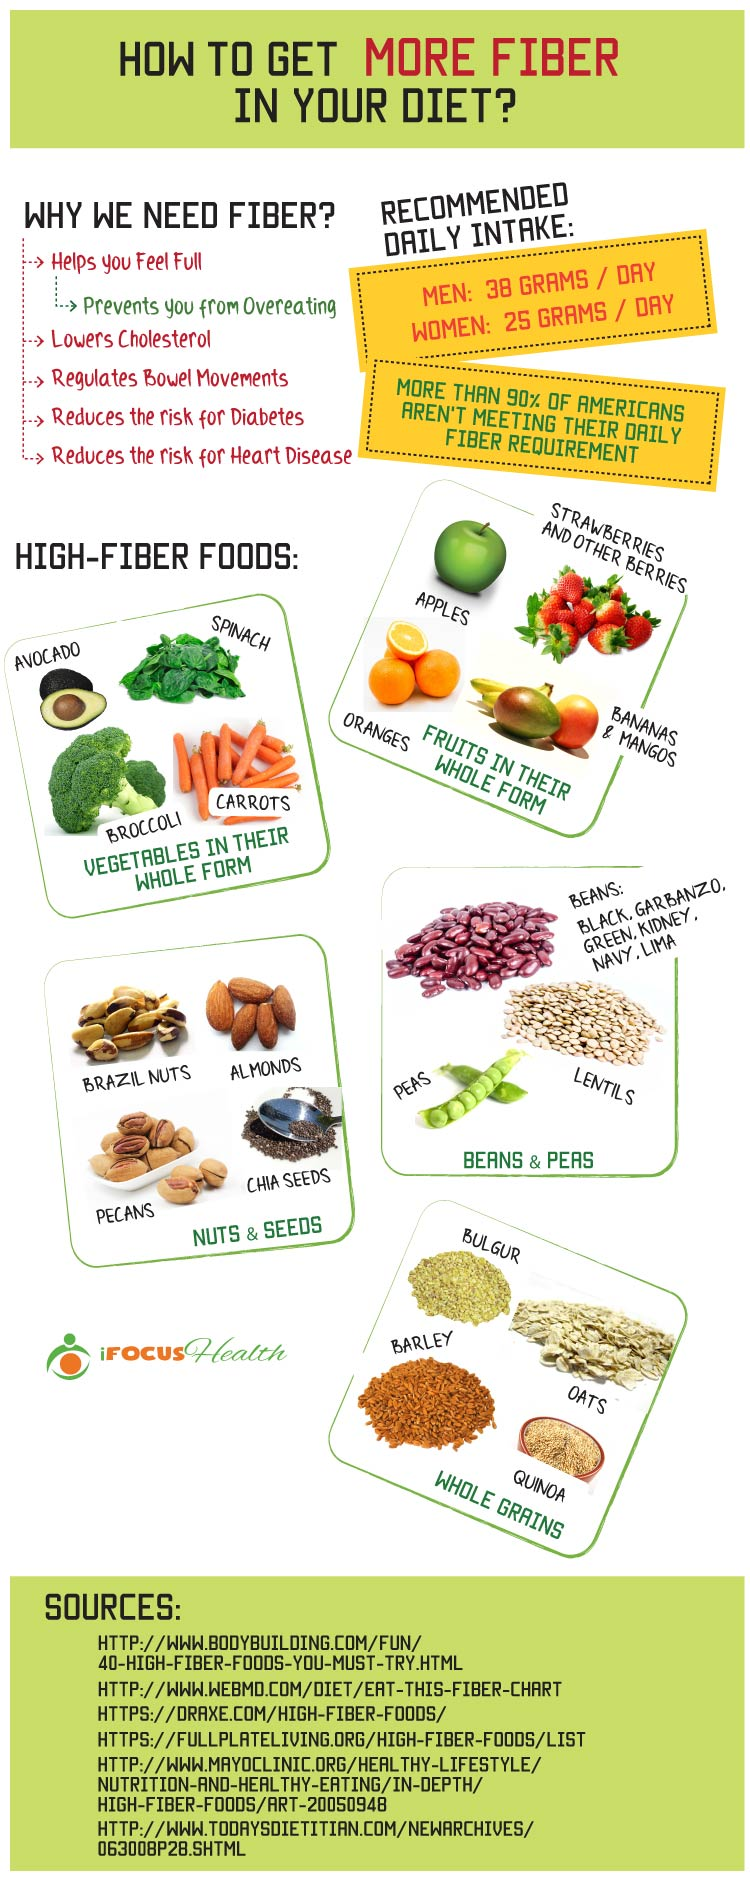 how to get more fiber infographic